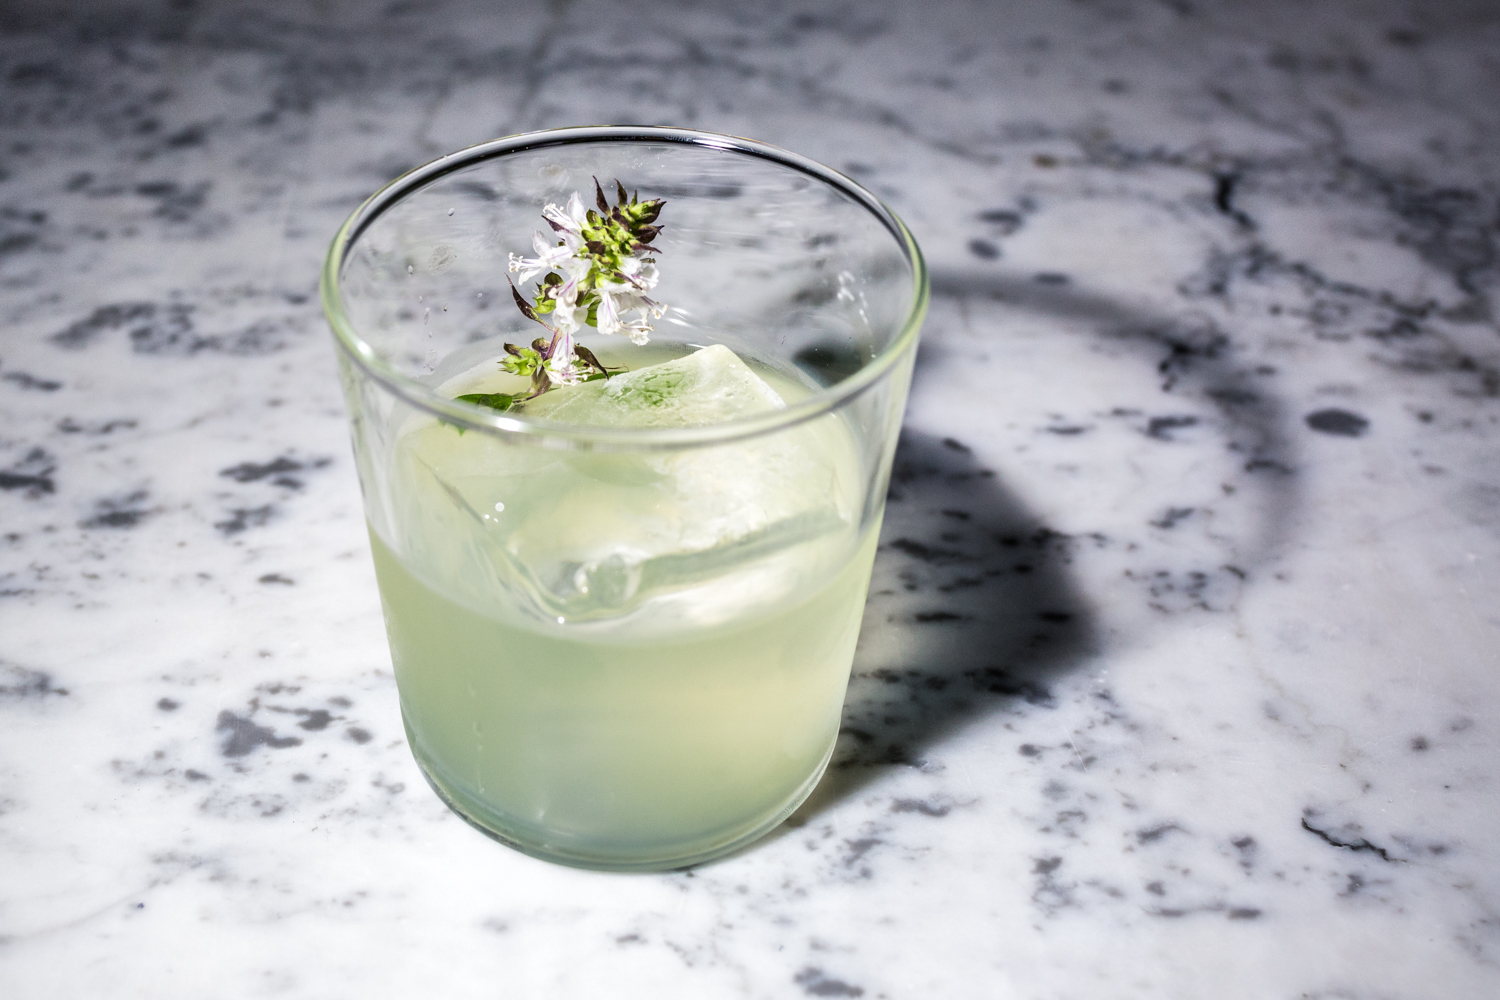 Mother's Milk: gin, Chartreuse, Luxardo, whey, and basil / Image: Catherine Viox{ }// Published: 9.19.19